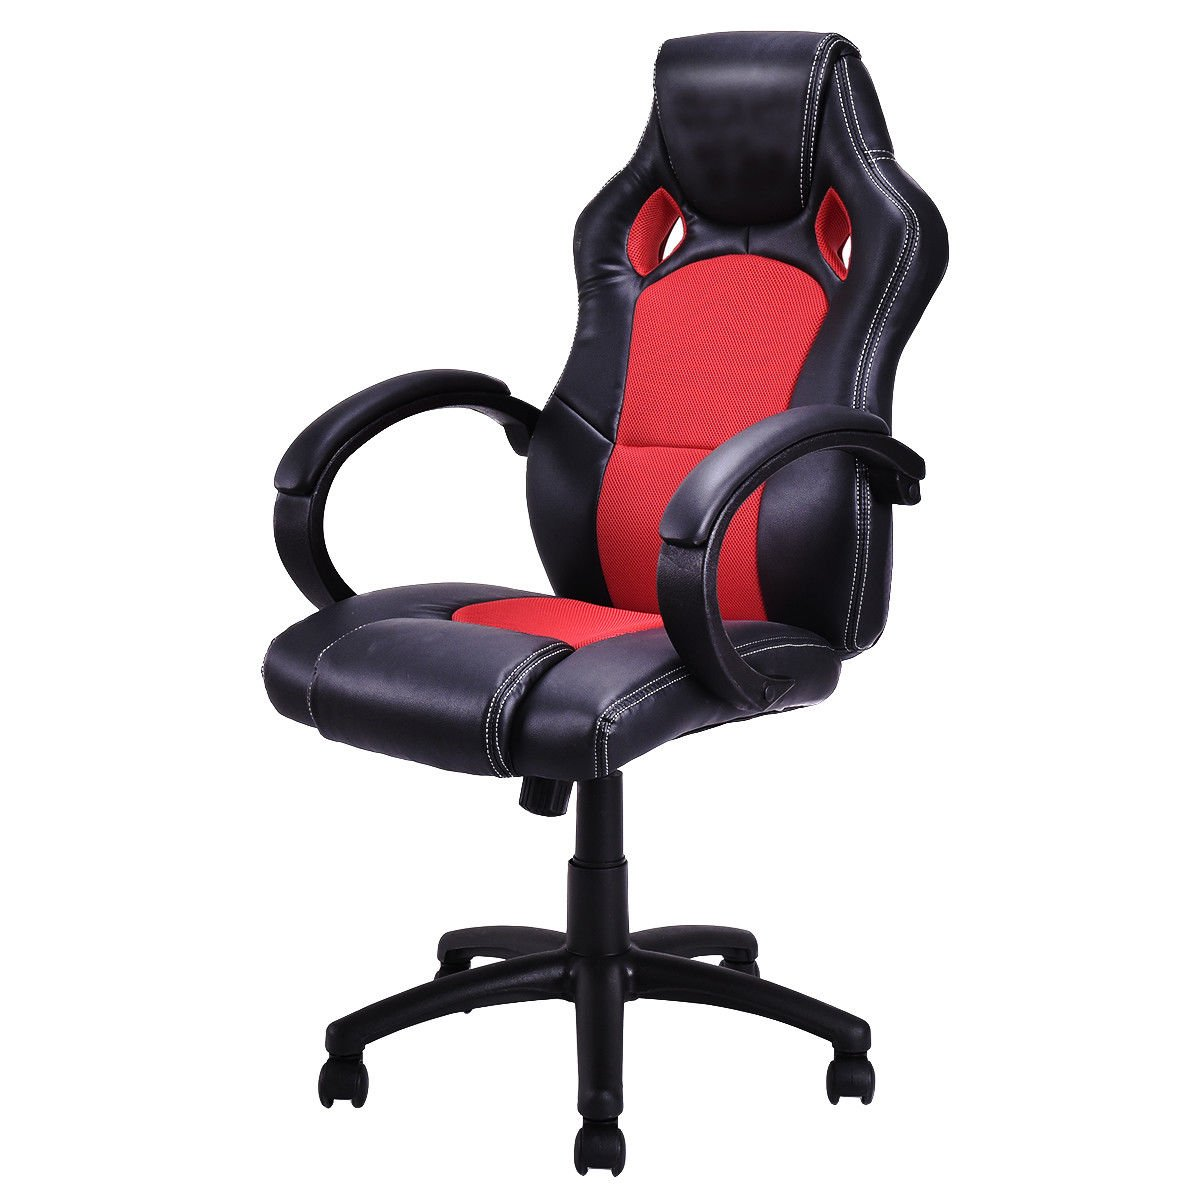 Officelax Gaming Chair Racing Chair High Back Ergonomic Office Chair Executive Modern Adjustable Computer Desk Chair Swivel Task Chair with Bucket Seat (red)